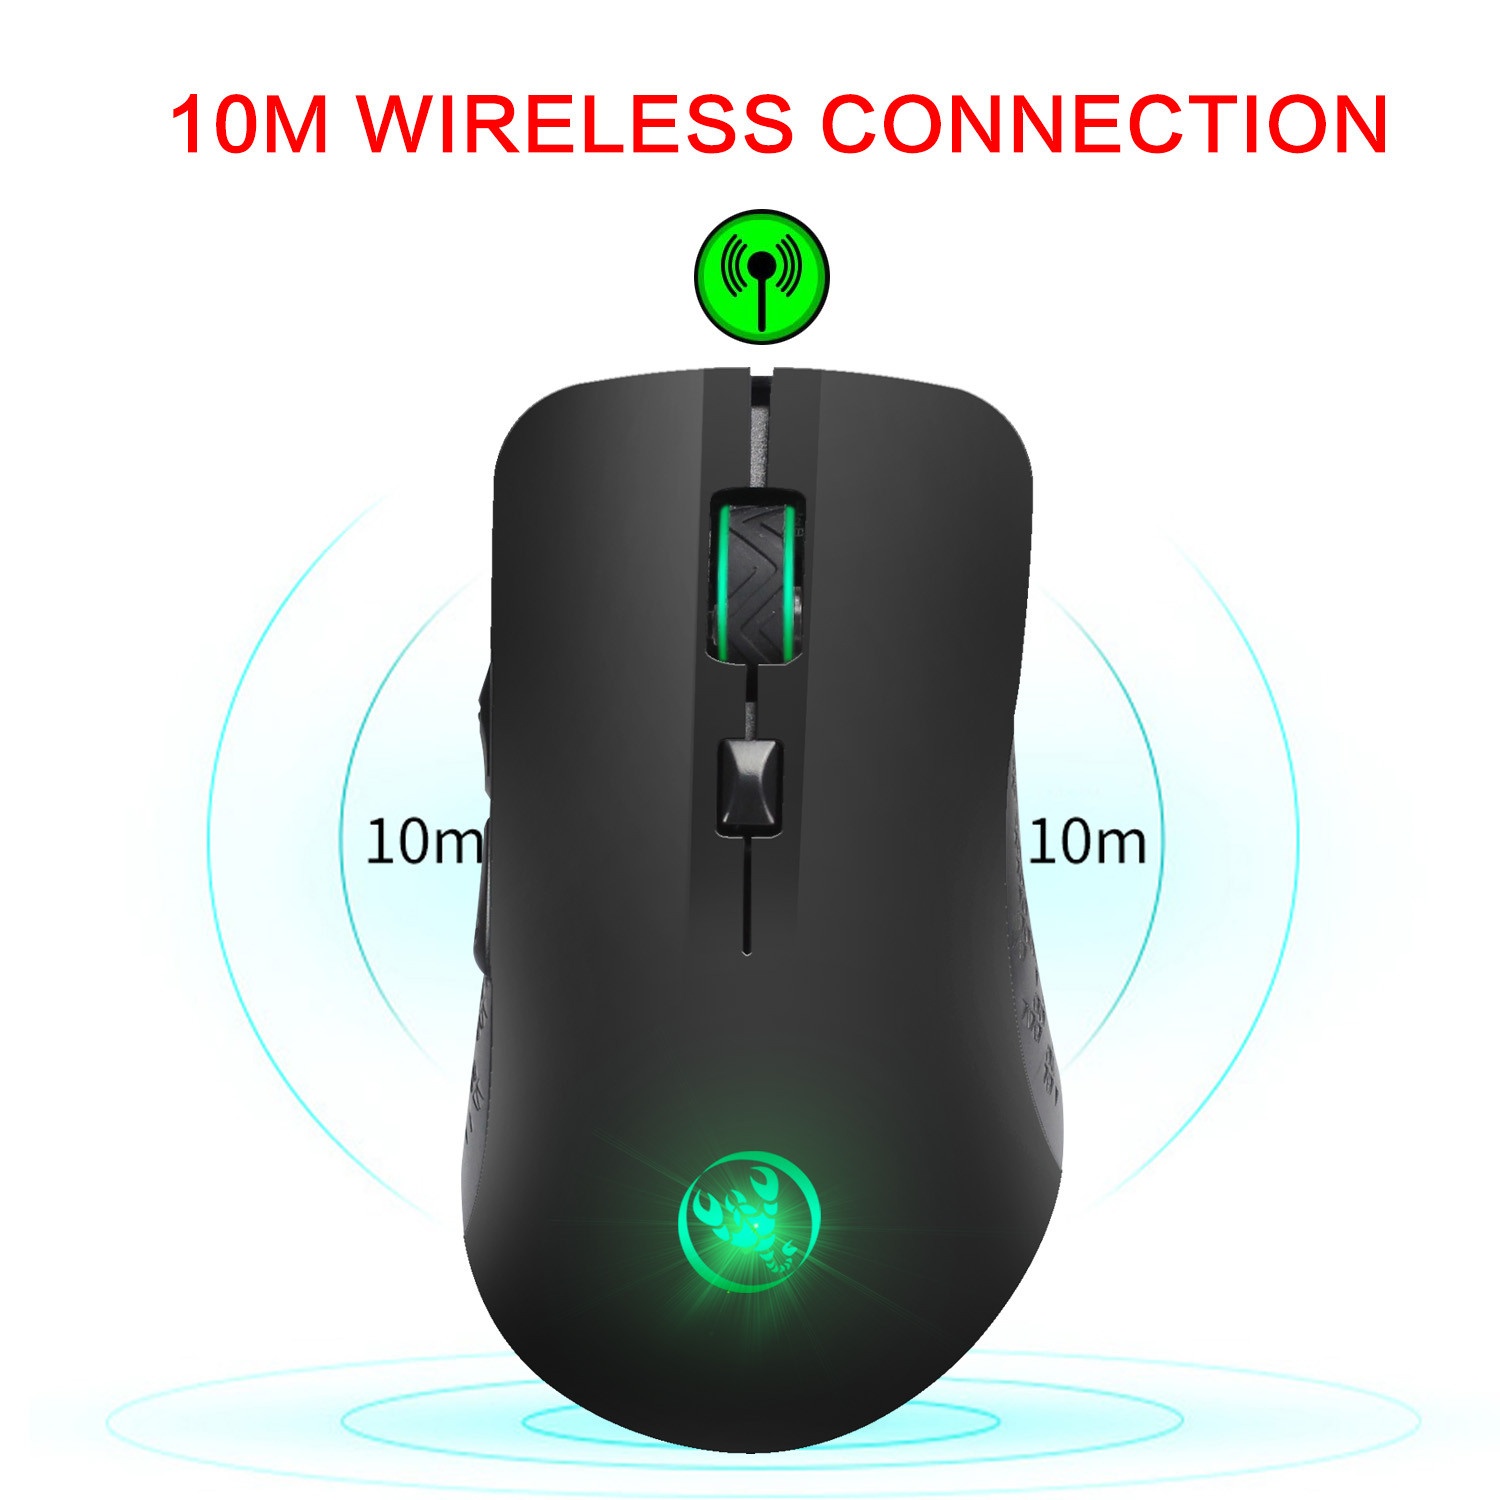 Wireless Gaming Mouse 2.4ghz 2400DPI Optical USB LED Ergonomic Charging Mice